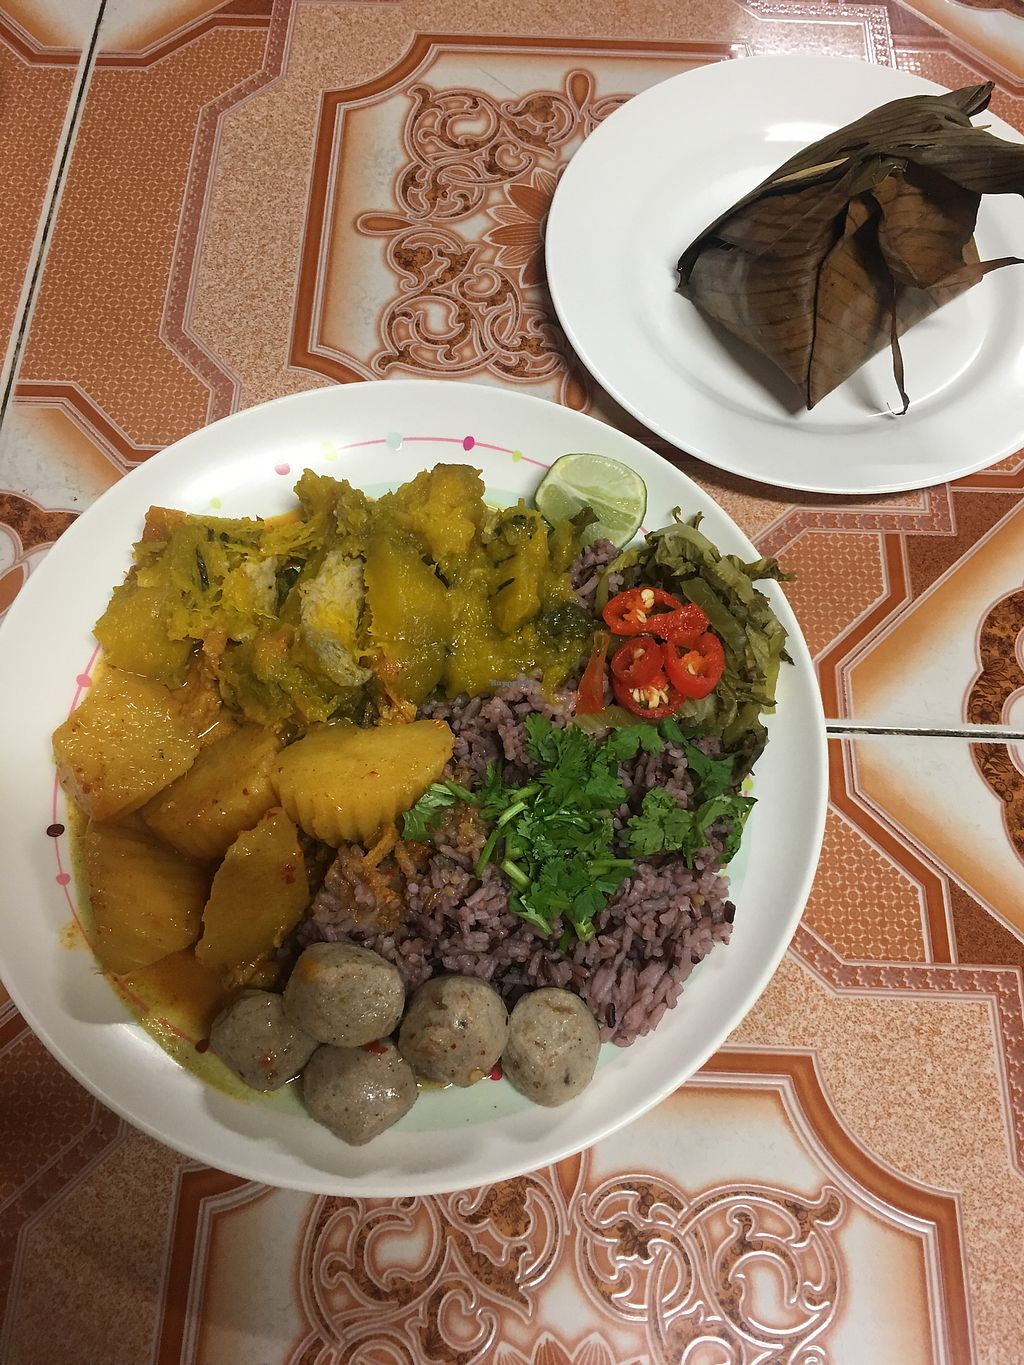 """Photo of Sangwiroon Vegetarian  by <a href=""""/members/profile/SummerPerlow"""">SummerPerlow</a> <br/>rice with 2 entries and mushroom meat balls.  <br/> September 7, 2017  - <a href='/contact/abuse/image/48403/301805'>Report</a>"""